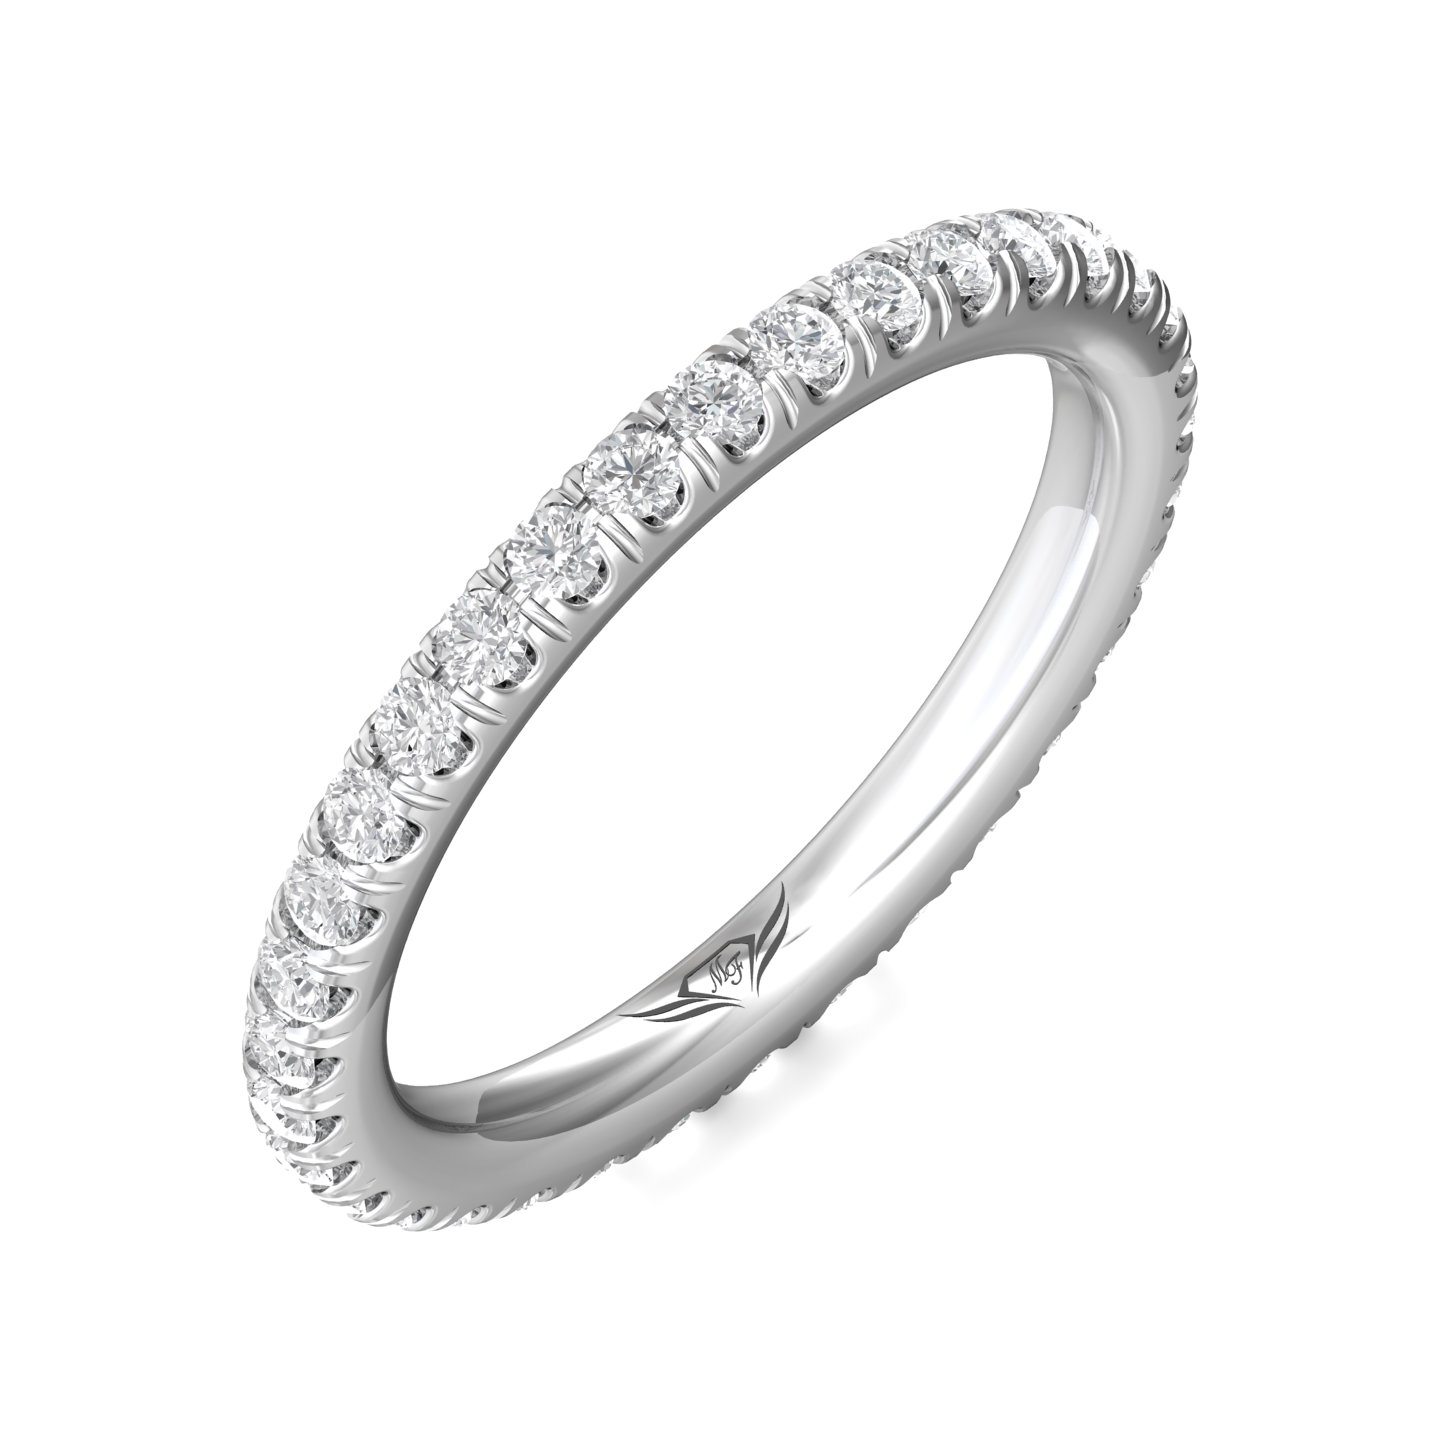 Rings - 14K White Gold FlyerFit Eternity Wedding Band - image 5